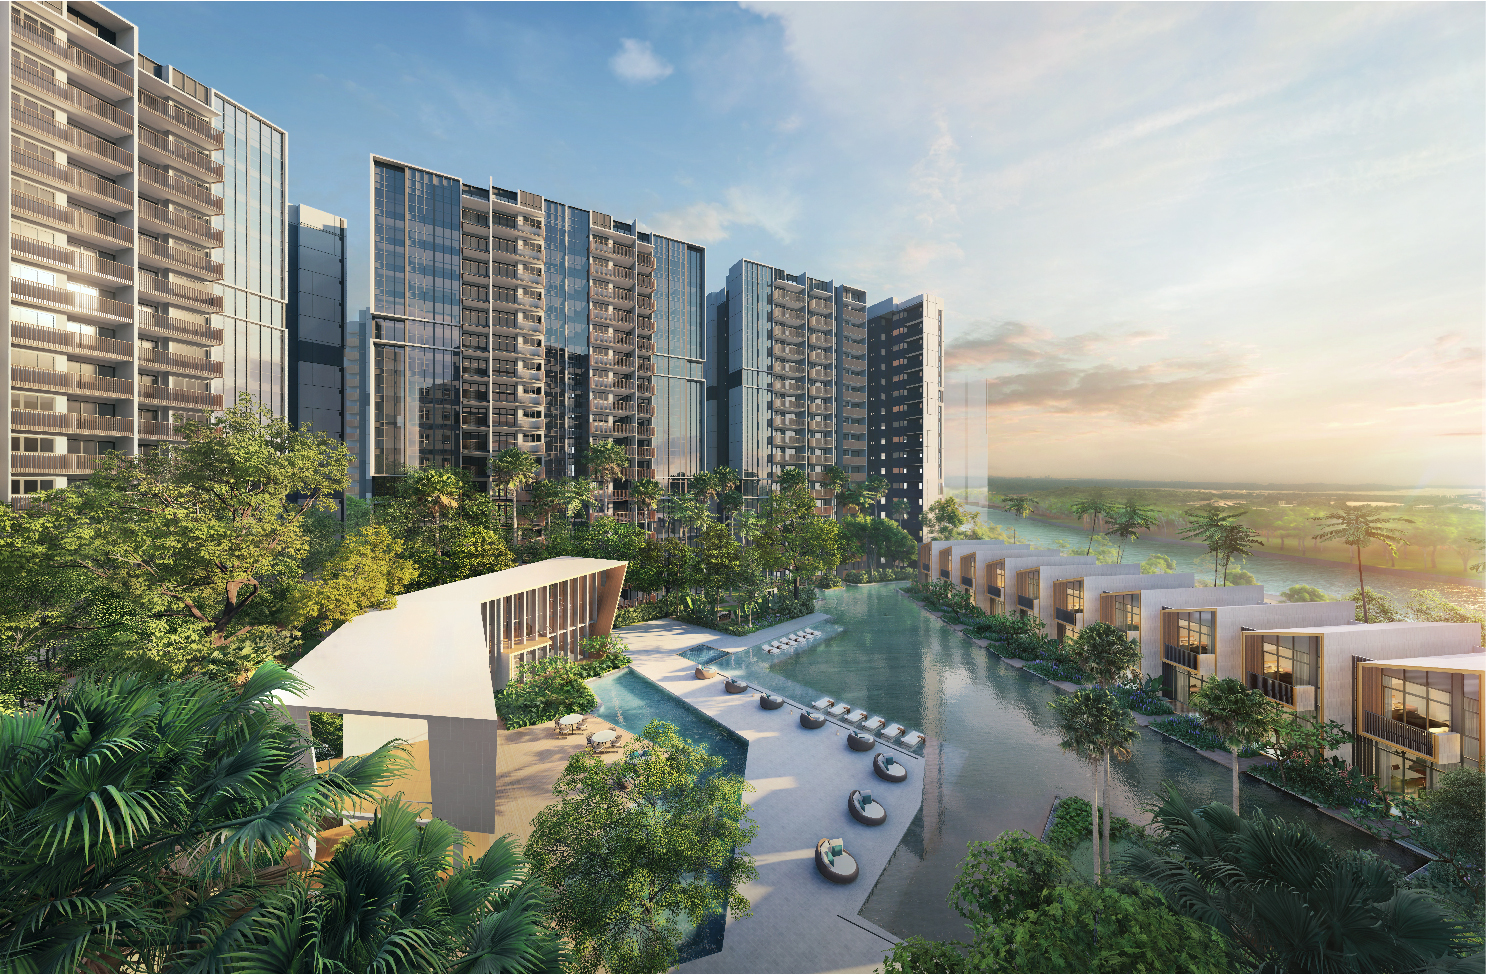 riverfront residences is a private condominium offering beautiful views of the serangoon river